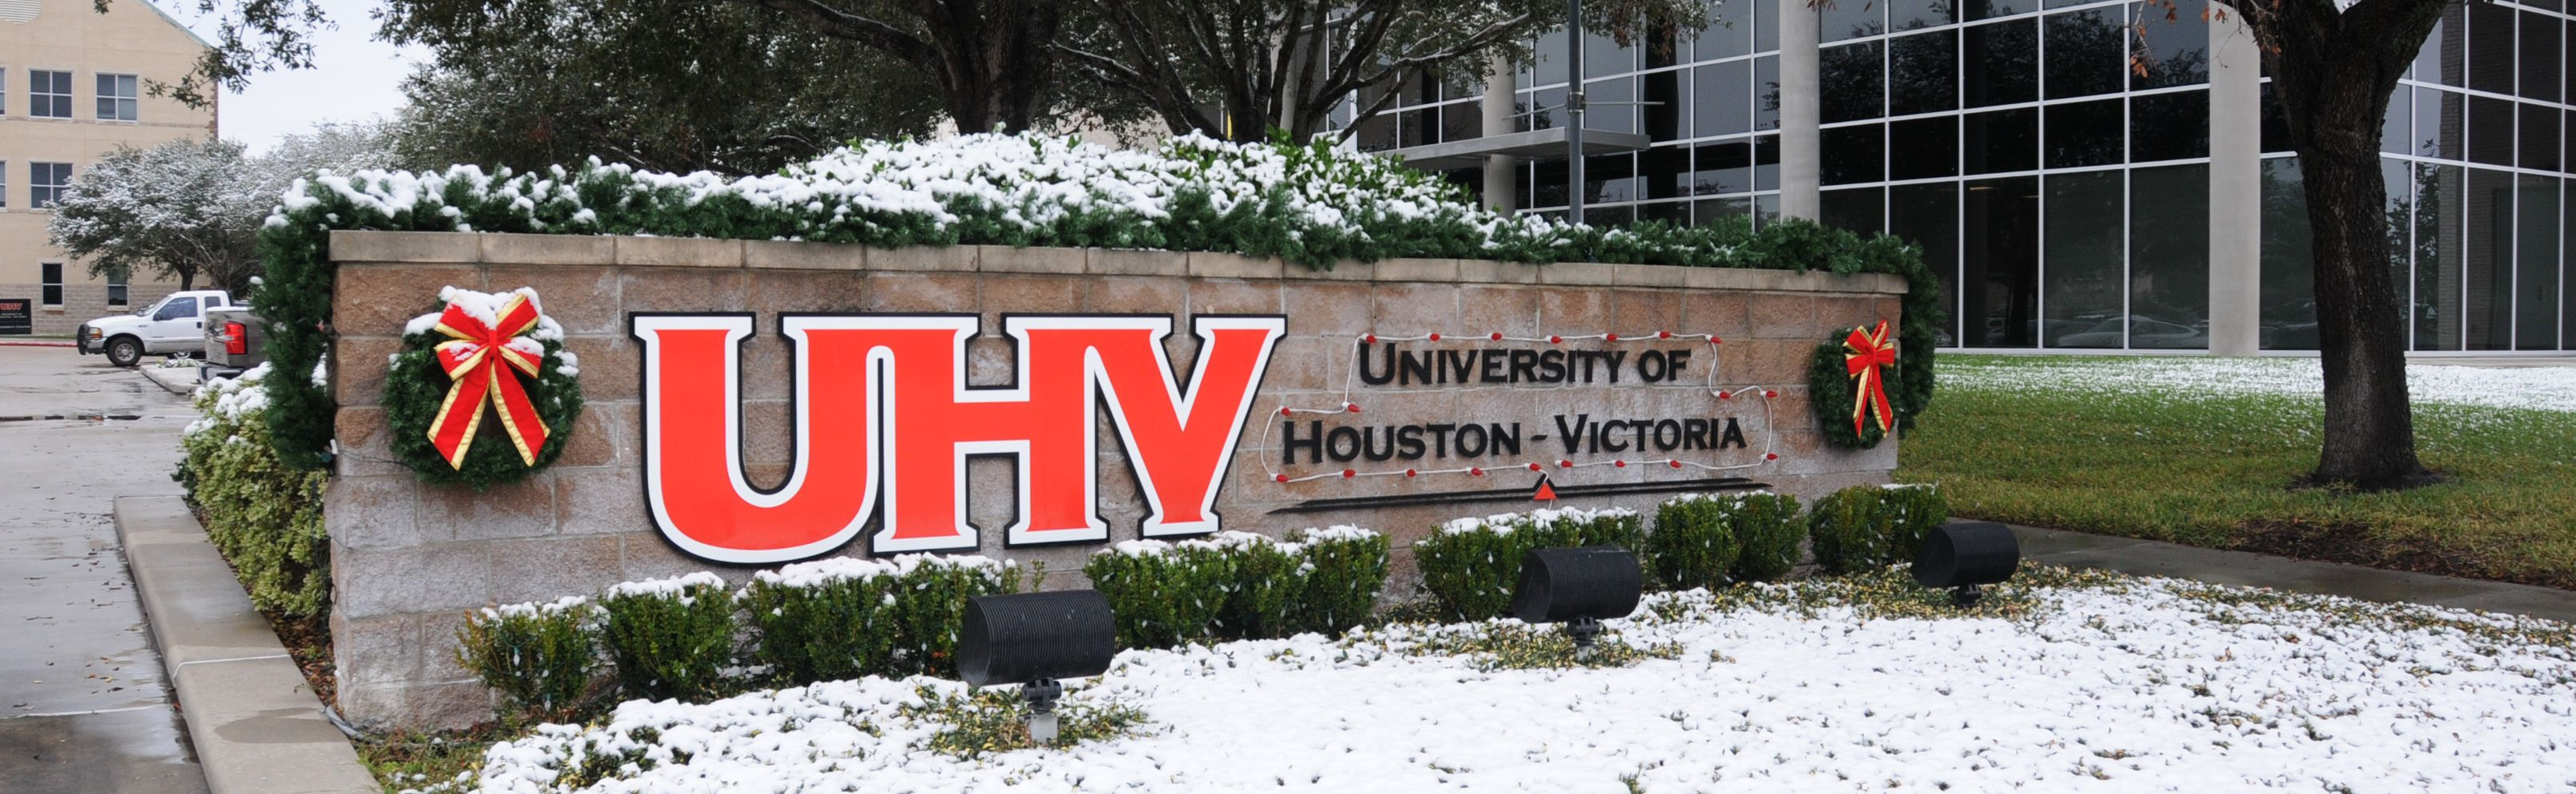 Pin by University of Houston-Victoria on Tour UHV (With ...